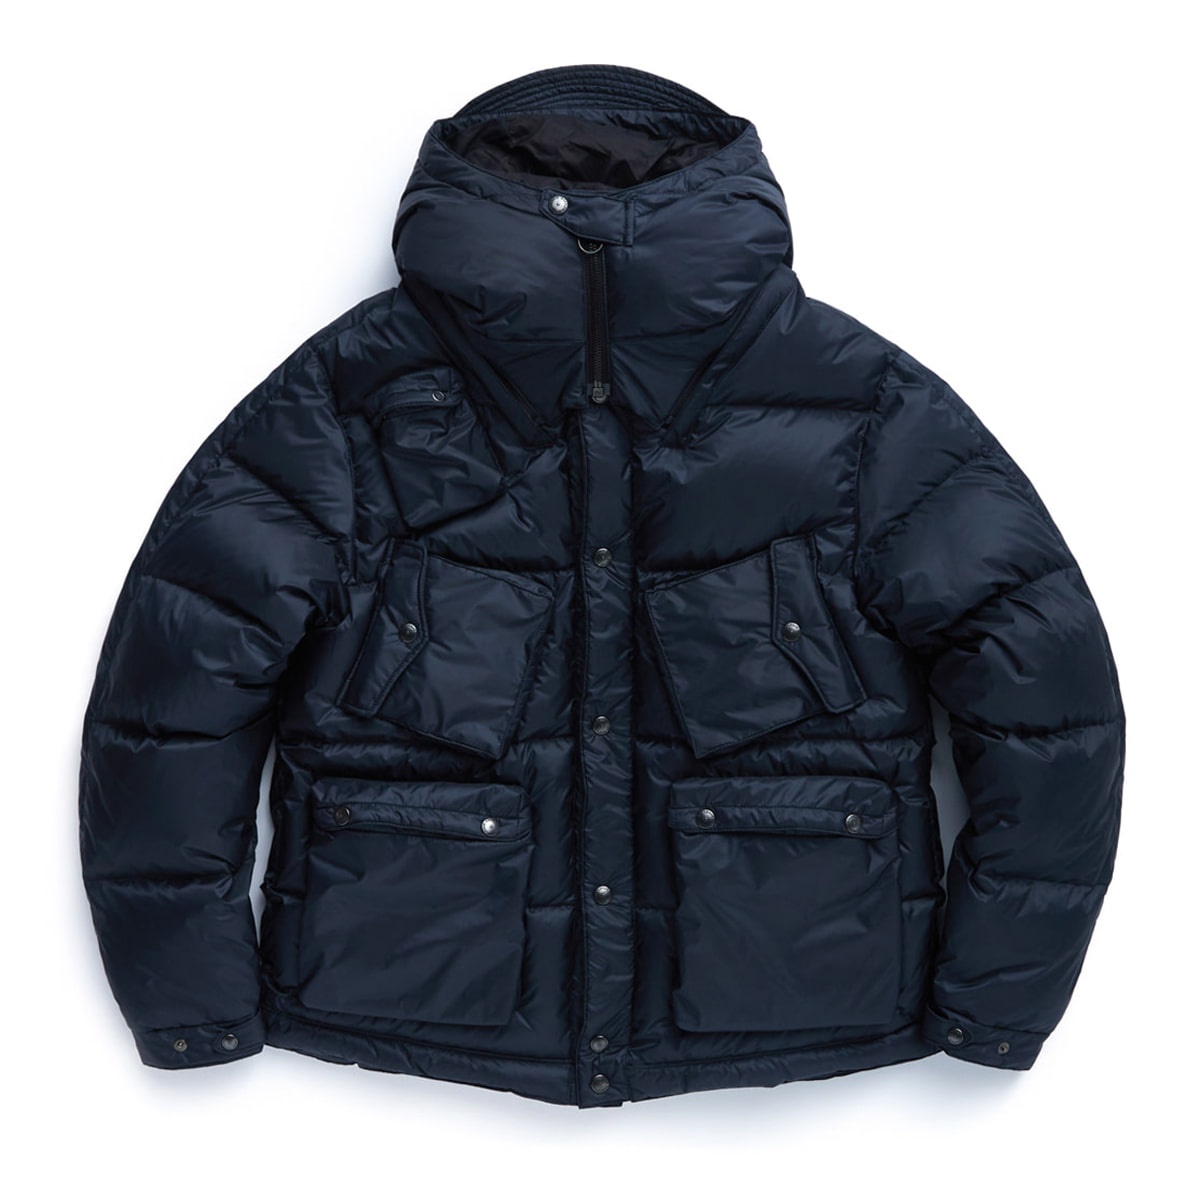 [EASTLOGUE] C-1 DOWN PARKA 'NAVY QUANTUM'